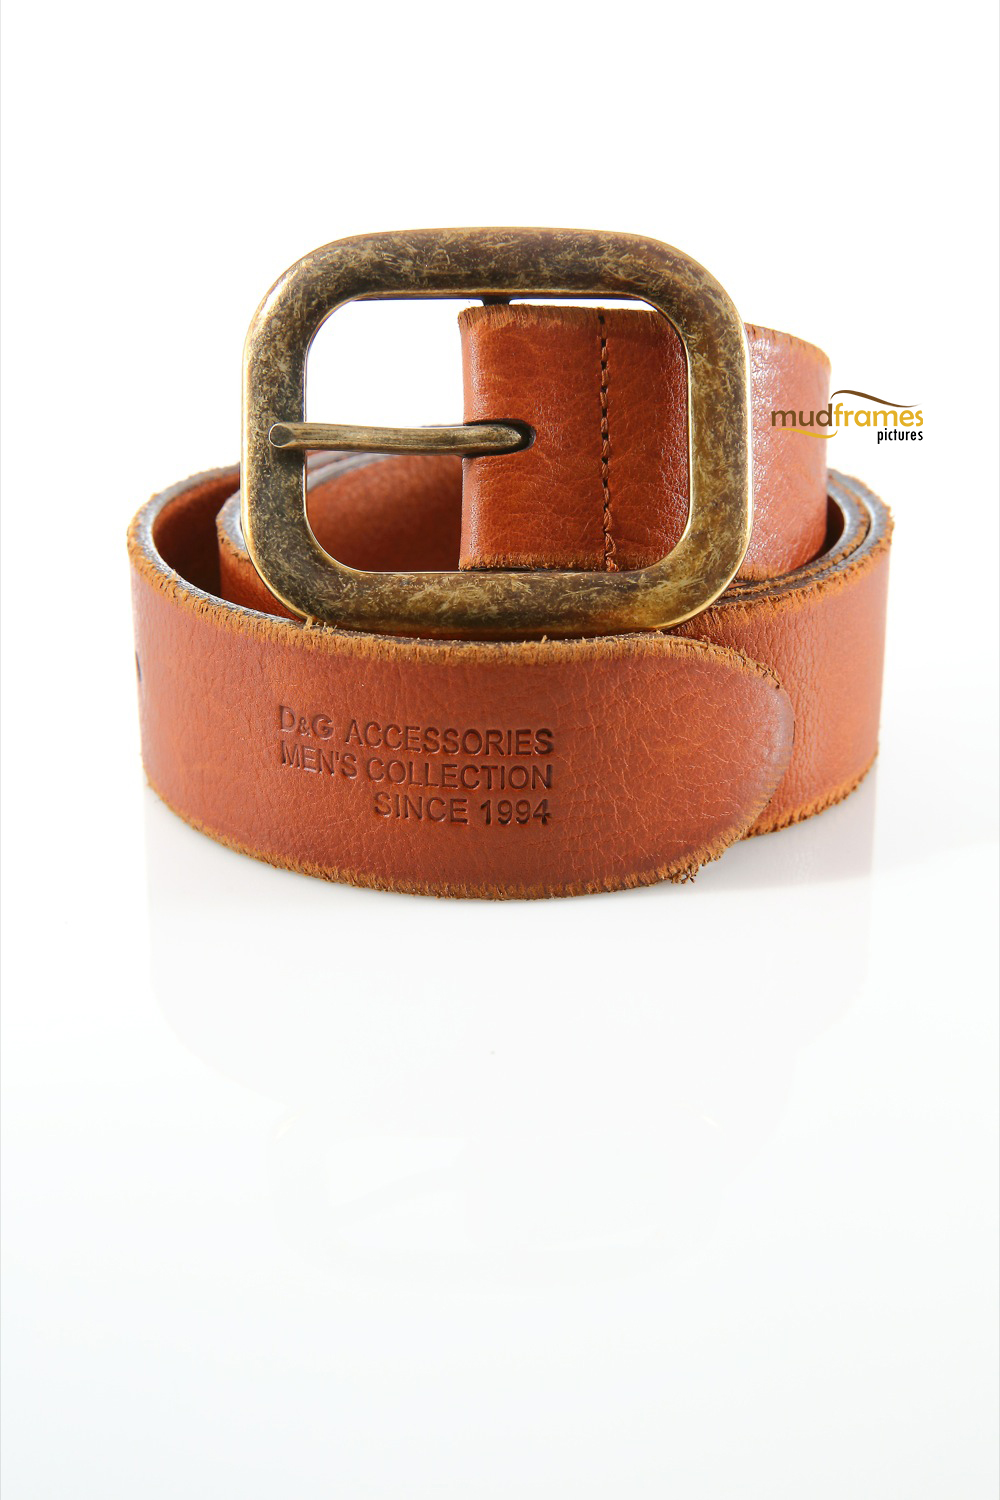 Brown Dolce & Gabbana leather belt on white background